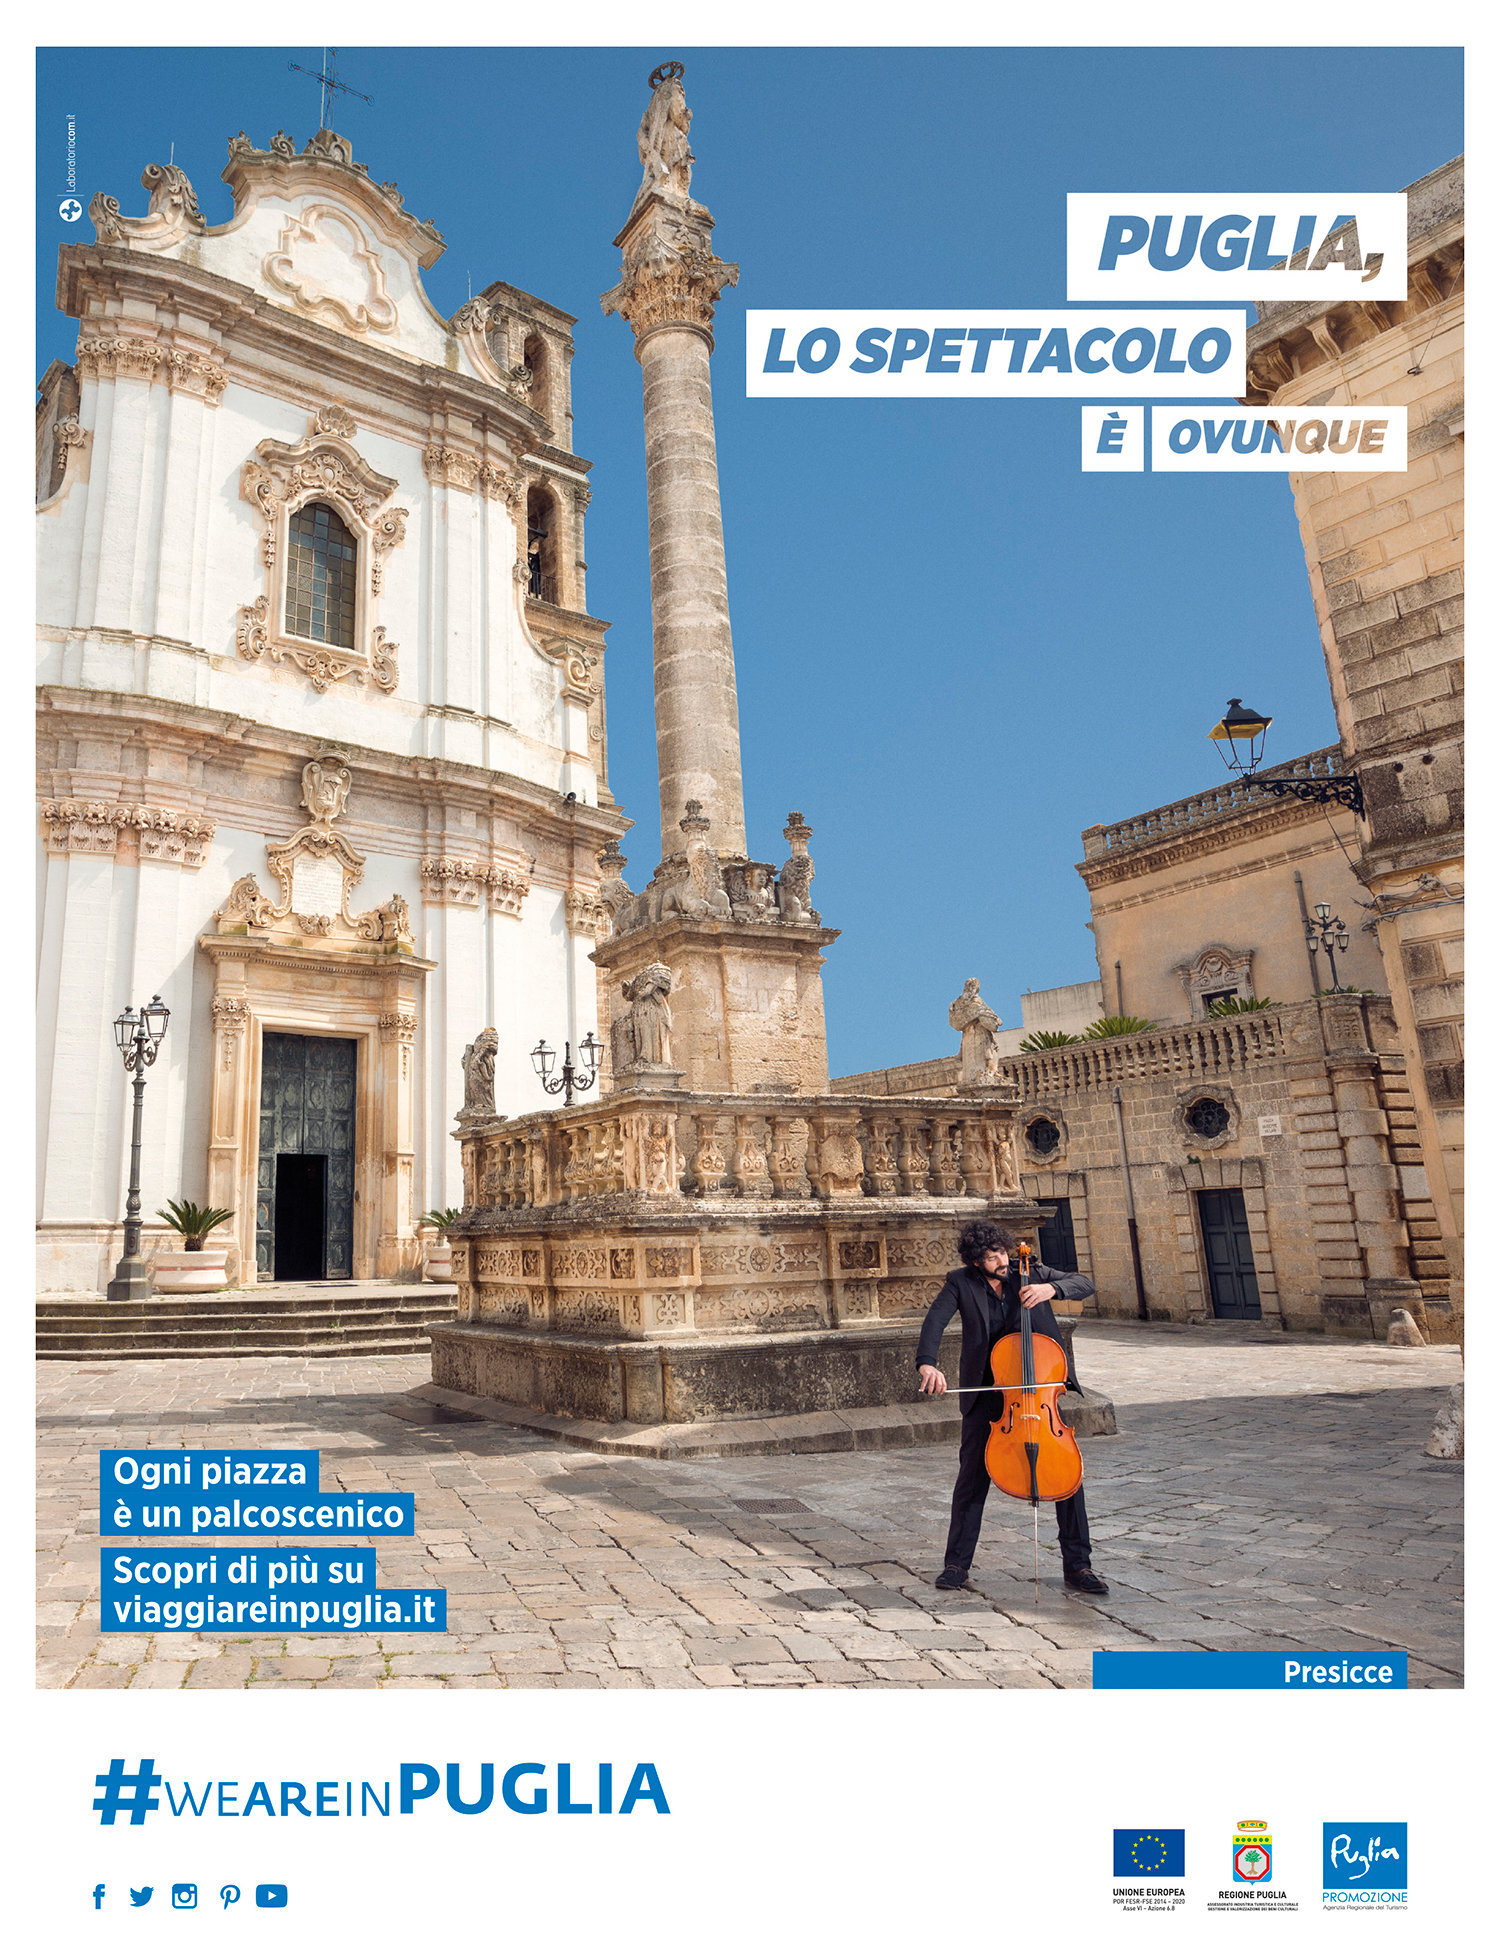 Istitutional Campaign for Puglia